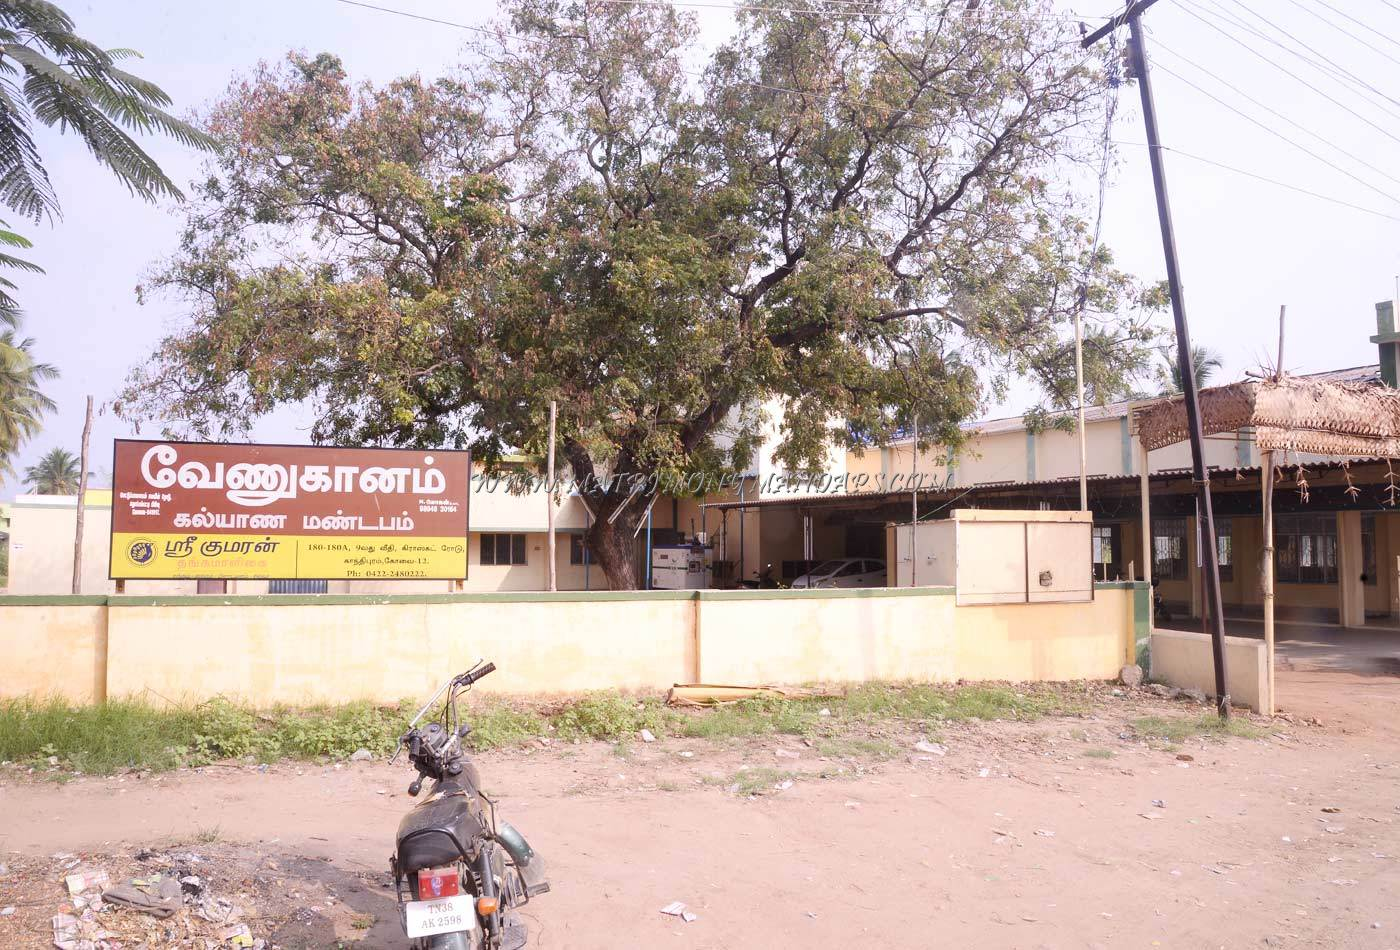 Find More Kalyana Mandapams in Vadamadurai